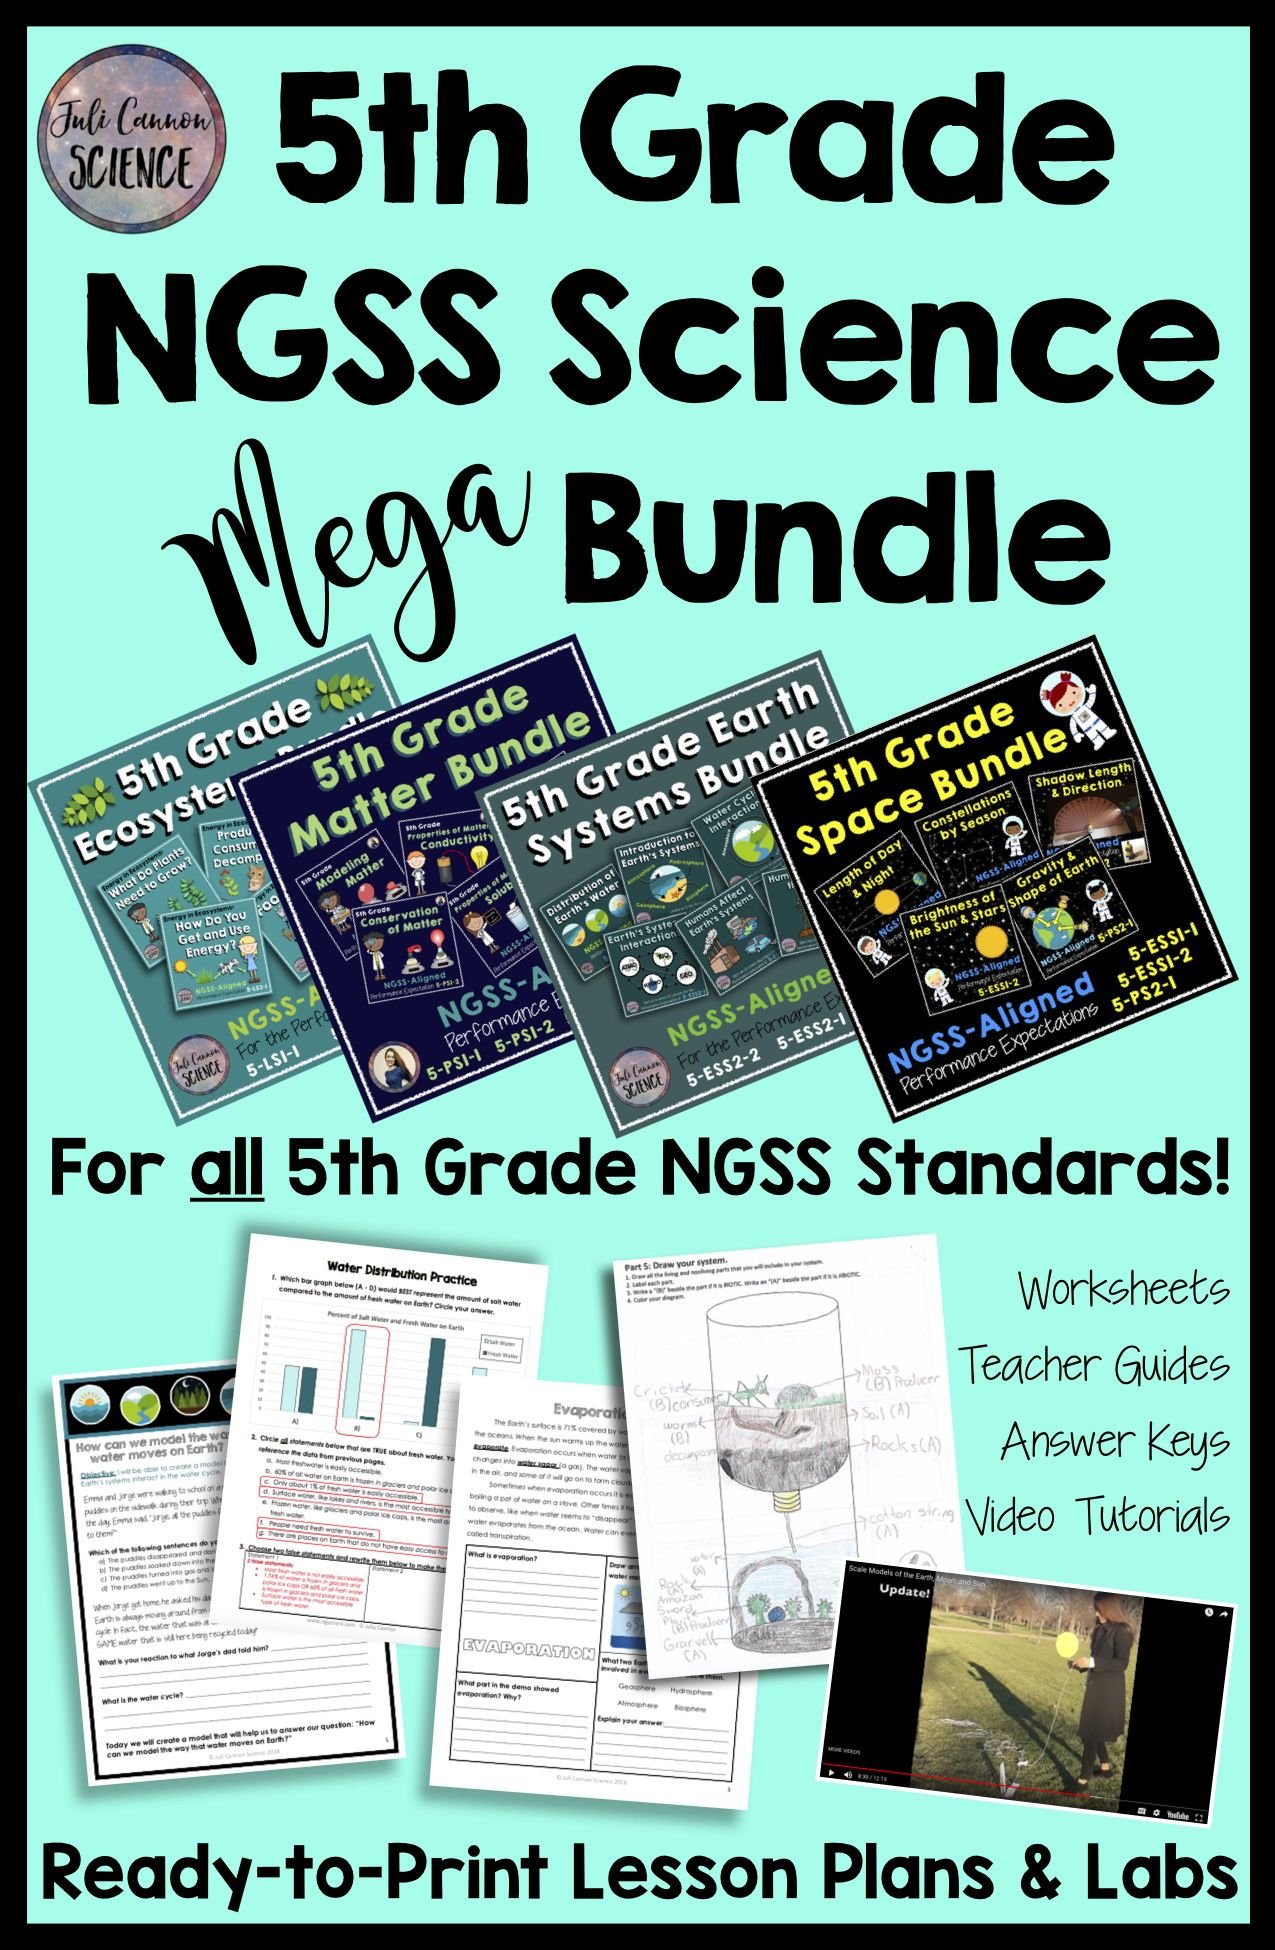 Complete 5th Grade Ngss Science Mega Bundle